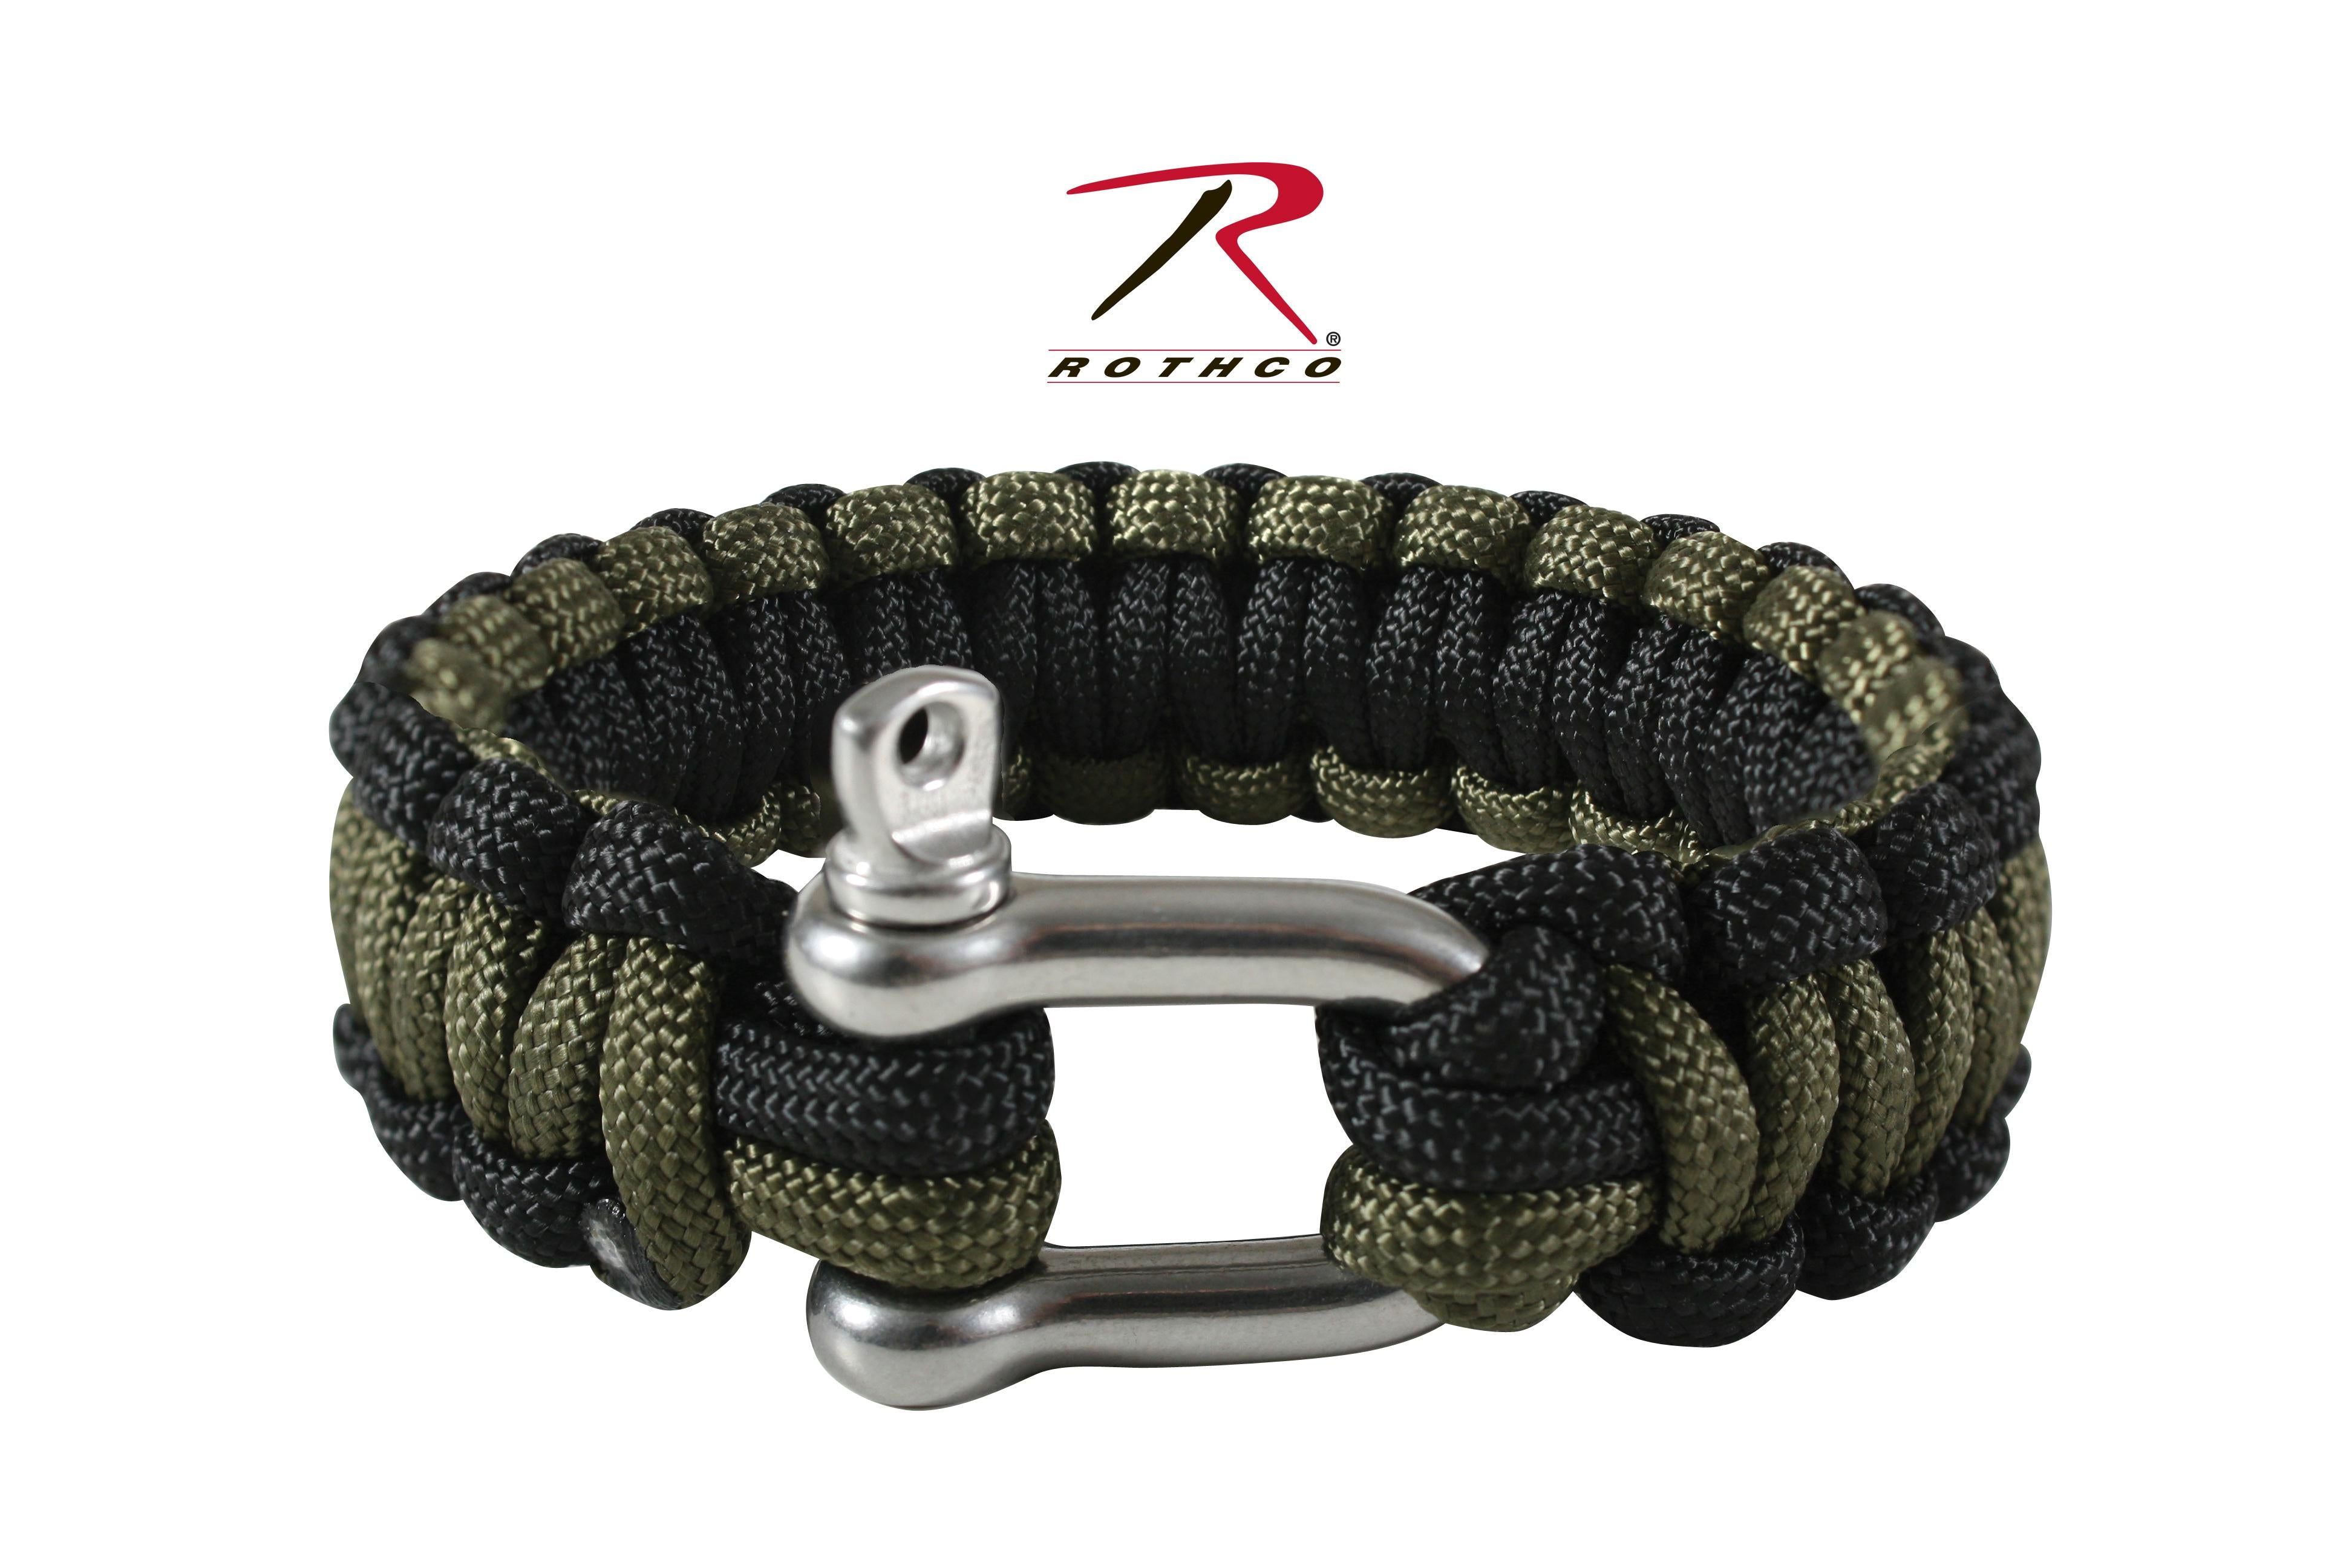 Rothco Paracord Bracelet With D-Shackle - Olive Drab / Black / 8 Inches